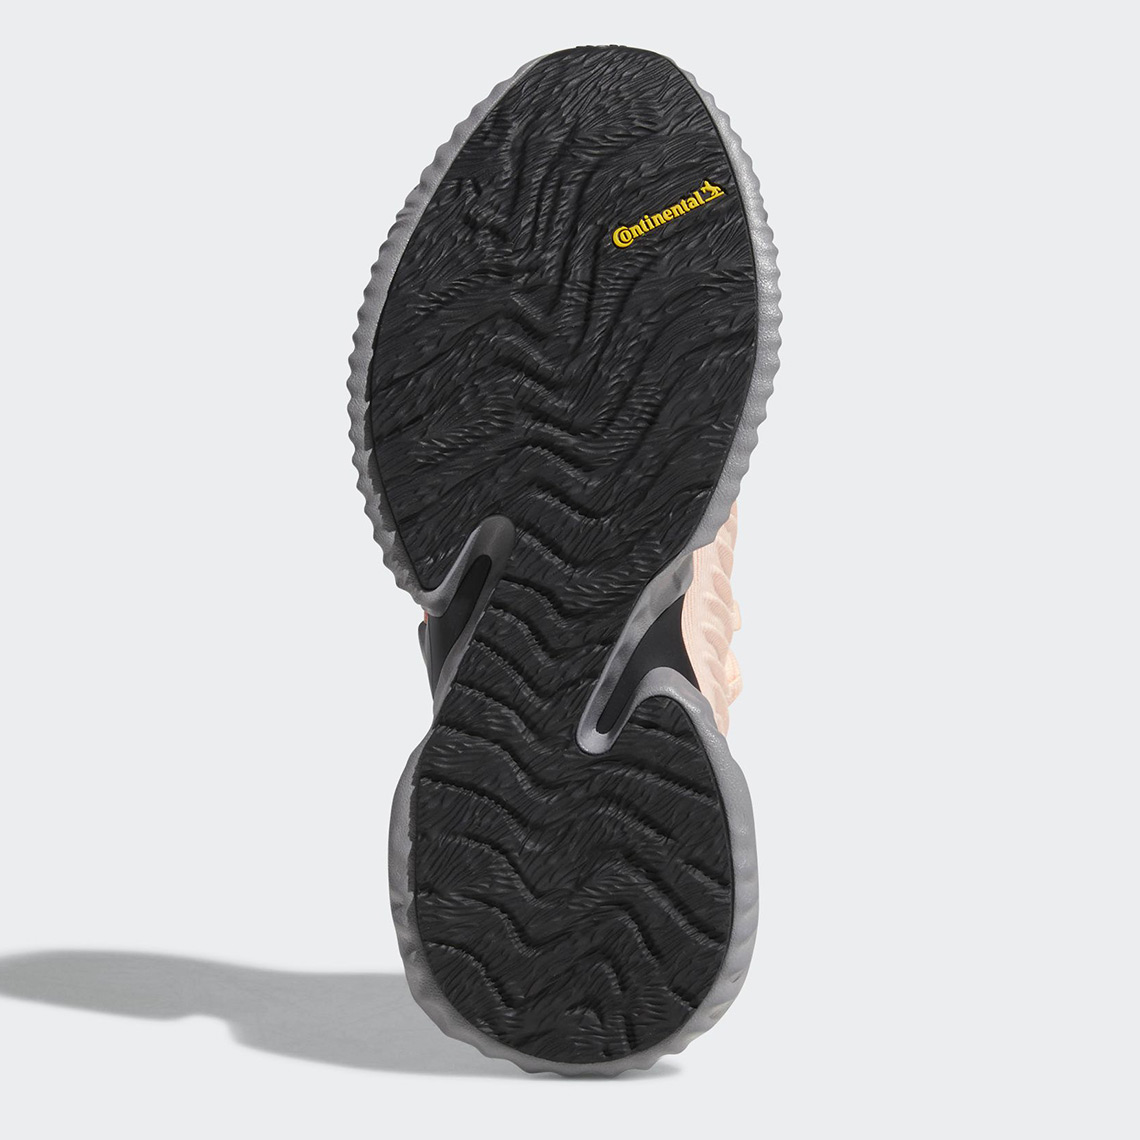 outlet store 20f7b 89ee0 adidas Alphabounce Instinct Release Date  SneakerNews.com